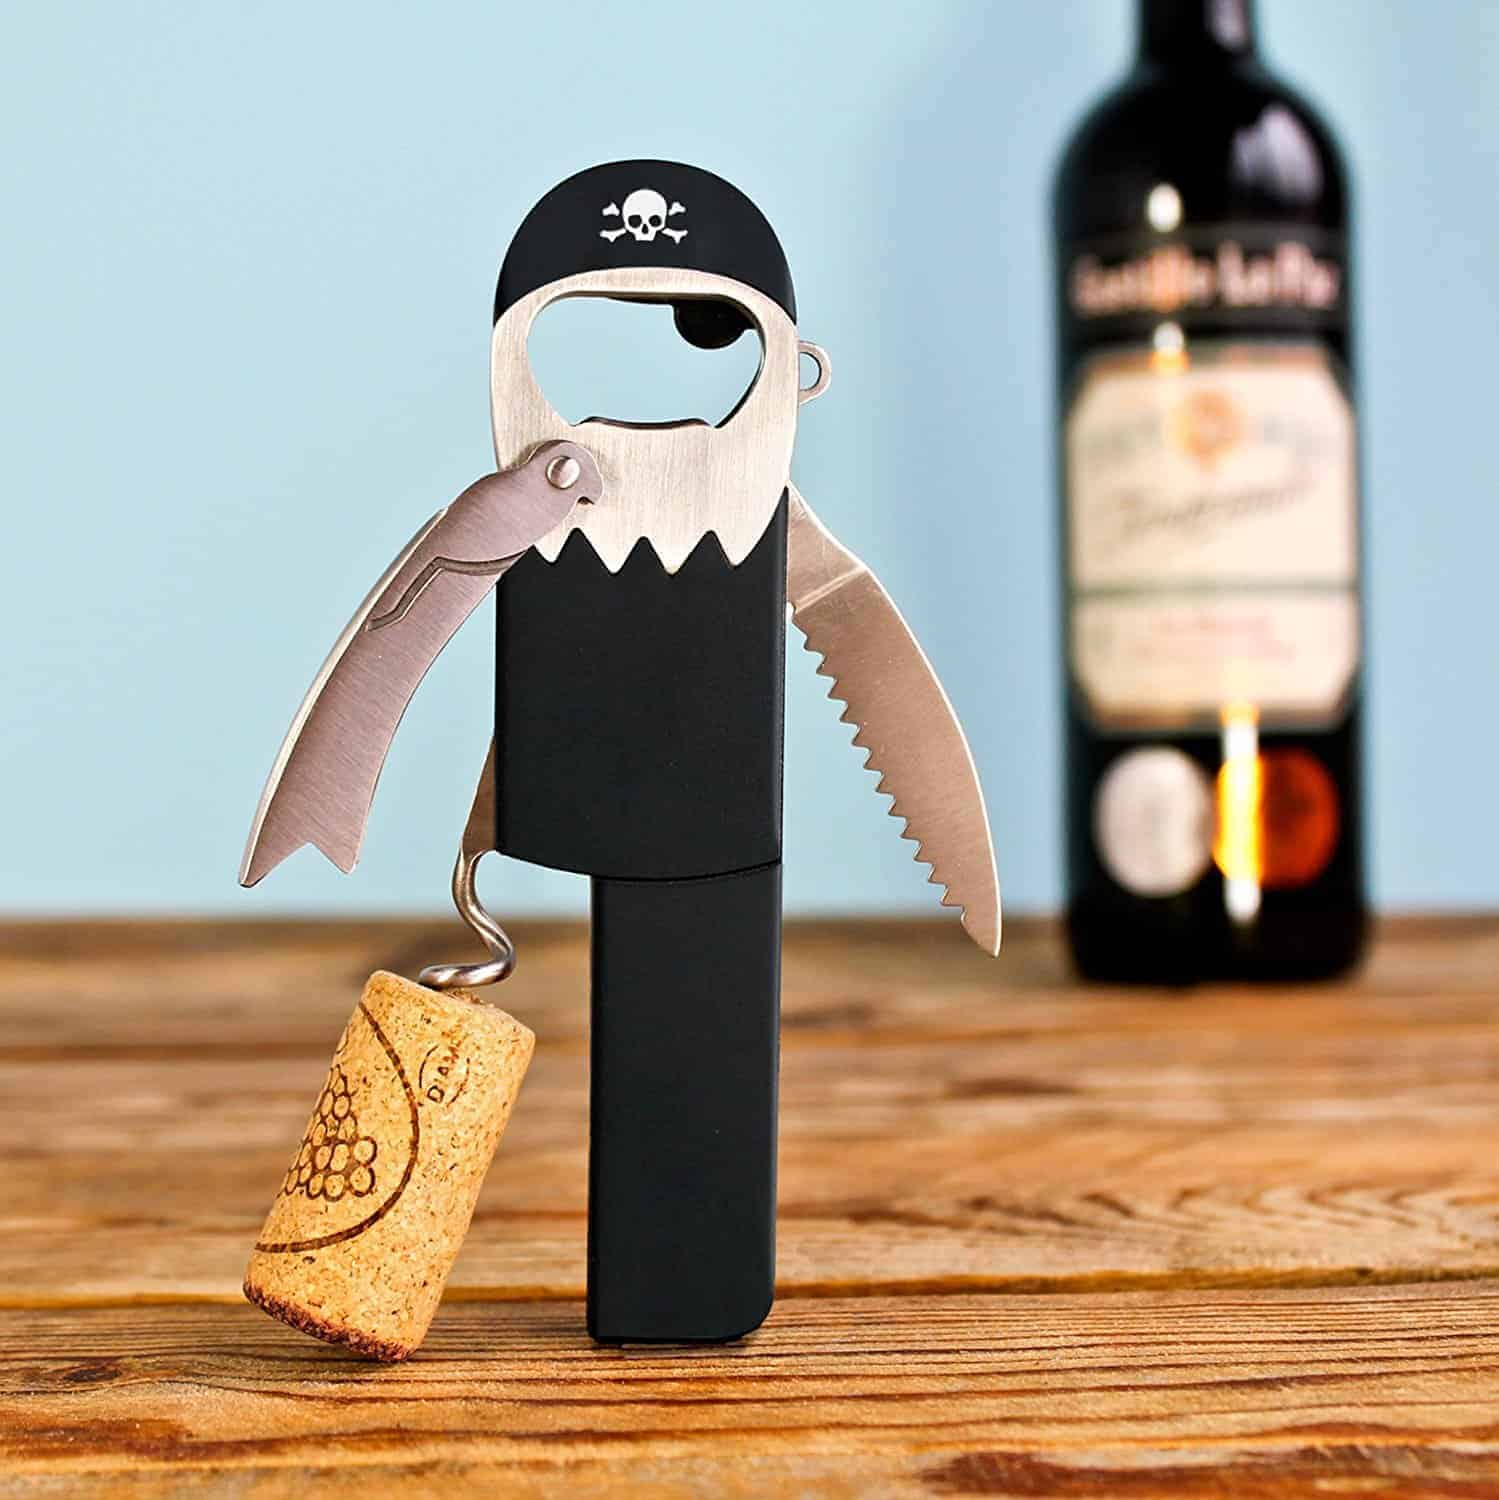 20 Coolest Bottle Openers You Can Buy For Your Home Bar Thingsidesire